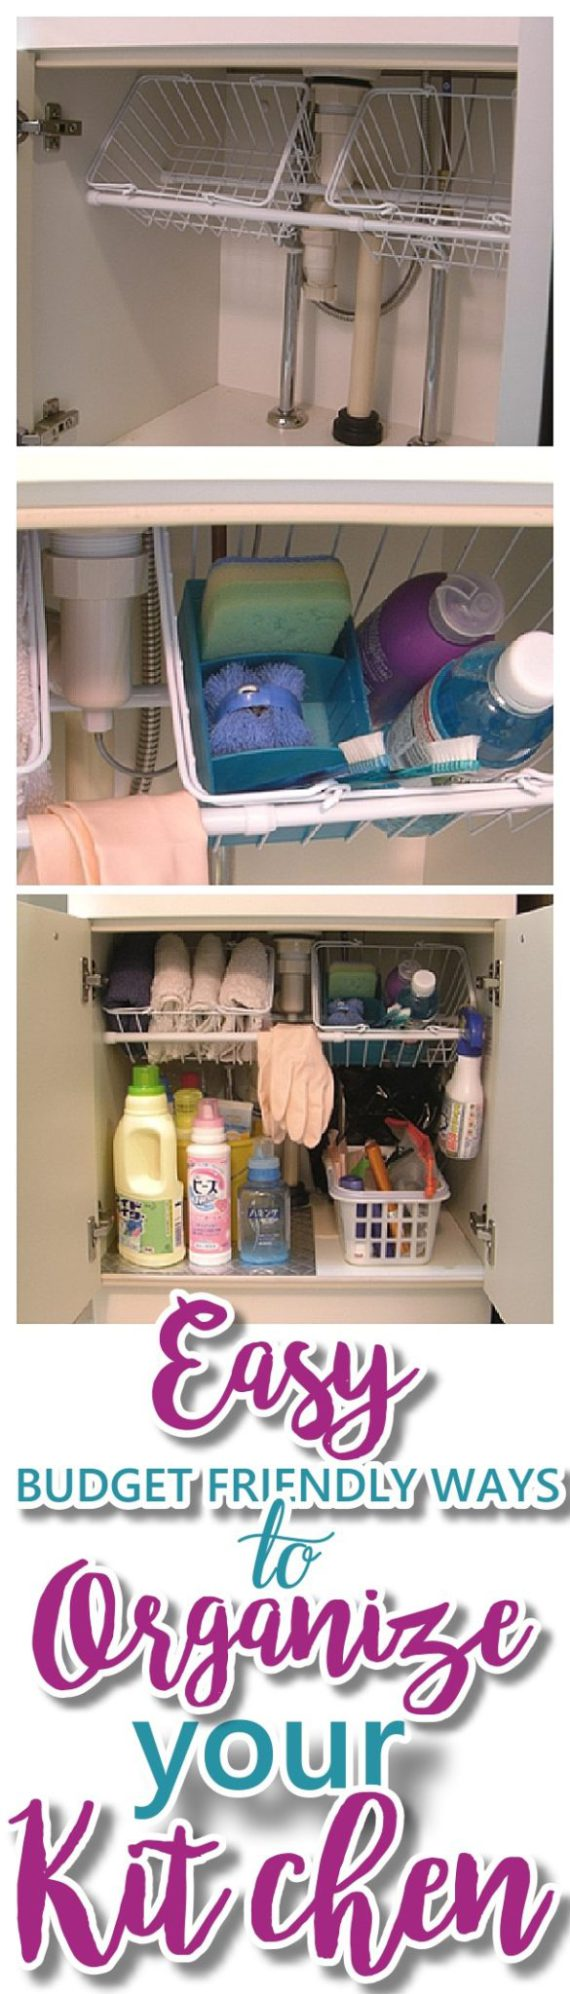 EASY Budget Friendly Ways To Organize Your Kitchen - The very best CHEAP, quick tips, space saving tricks, clever hacks and organizing ideas   Dreaming in DIY